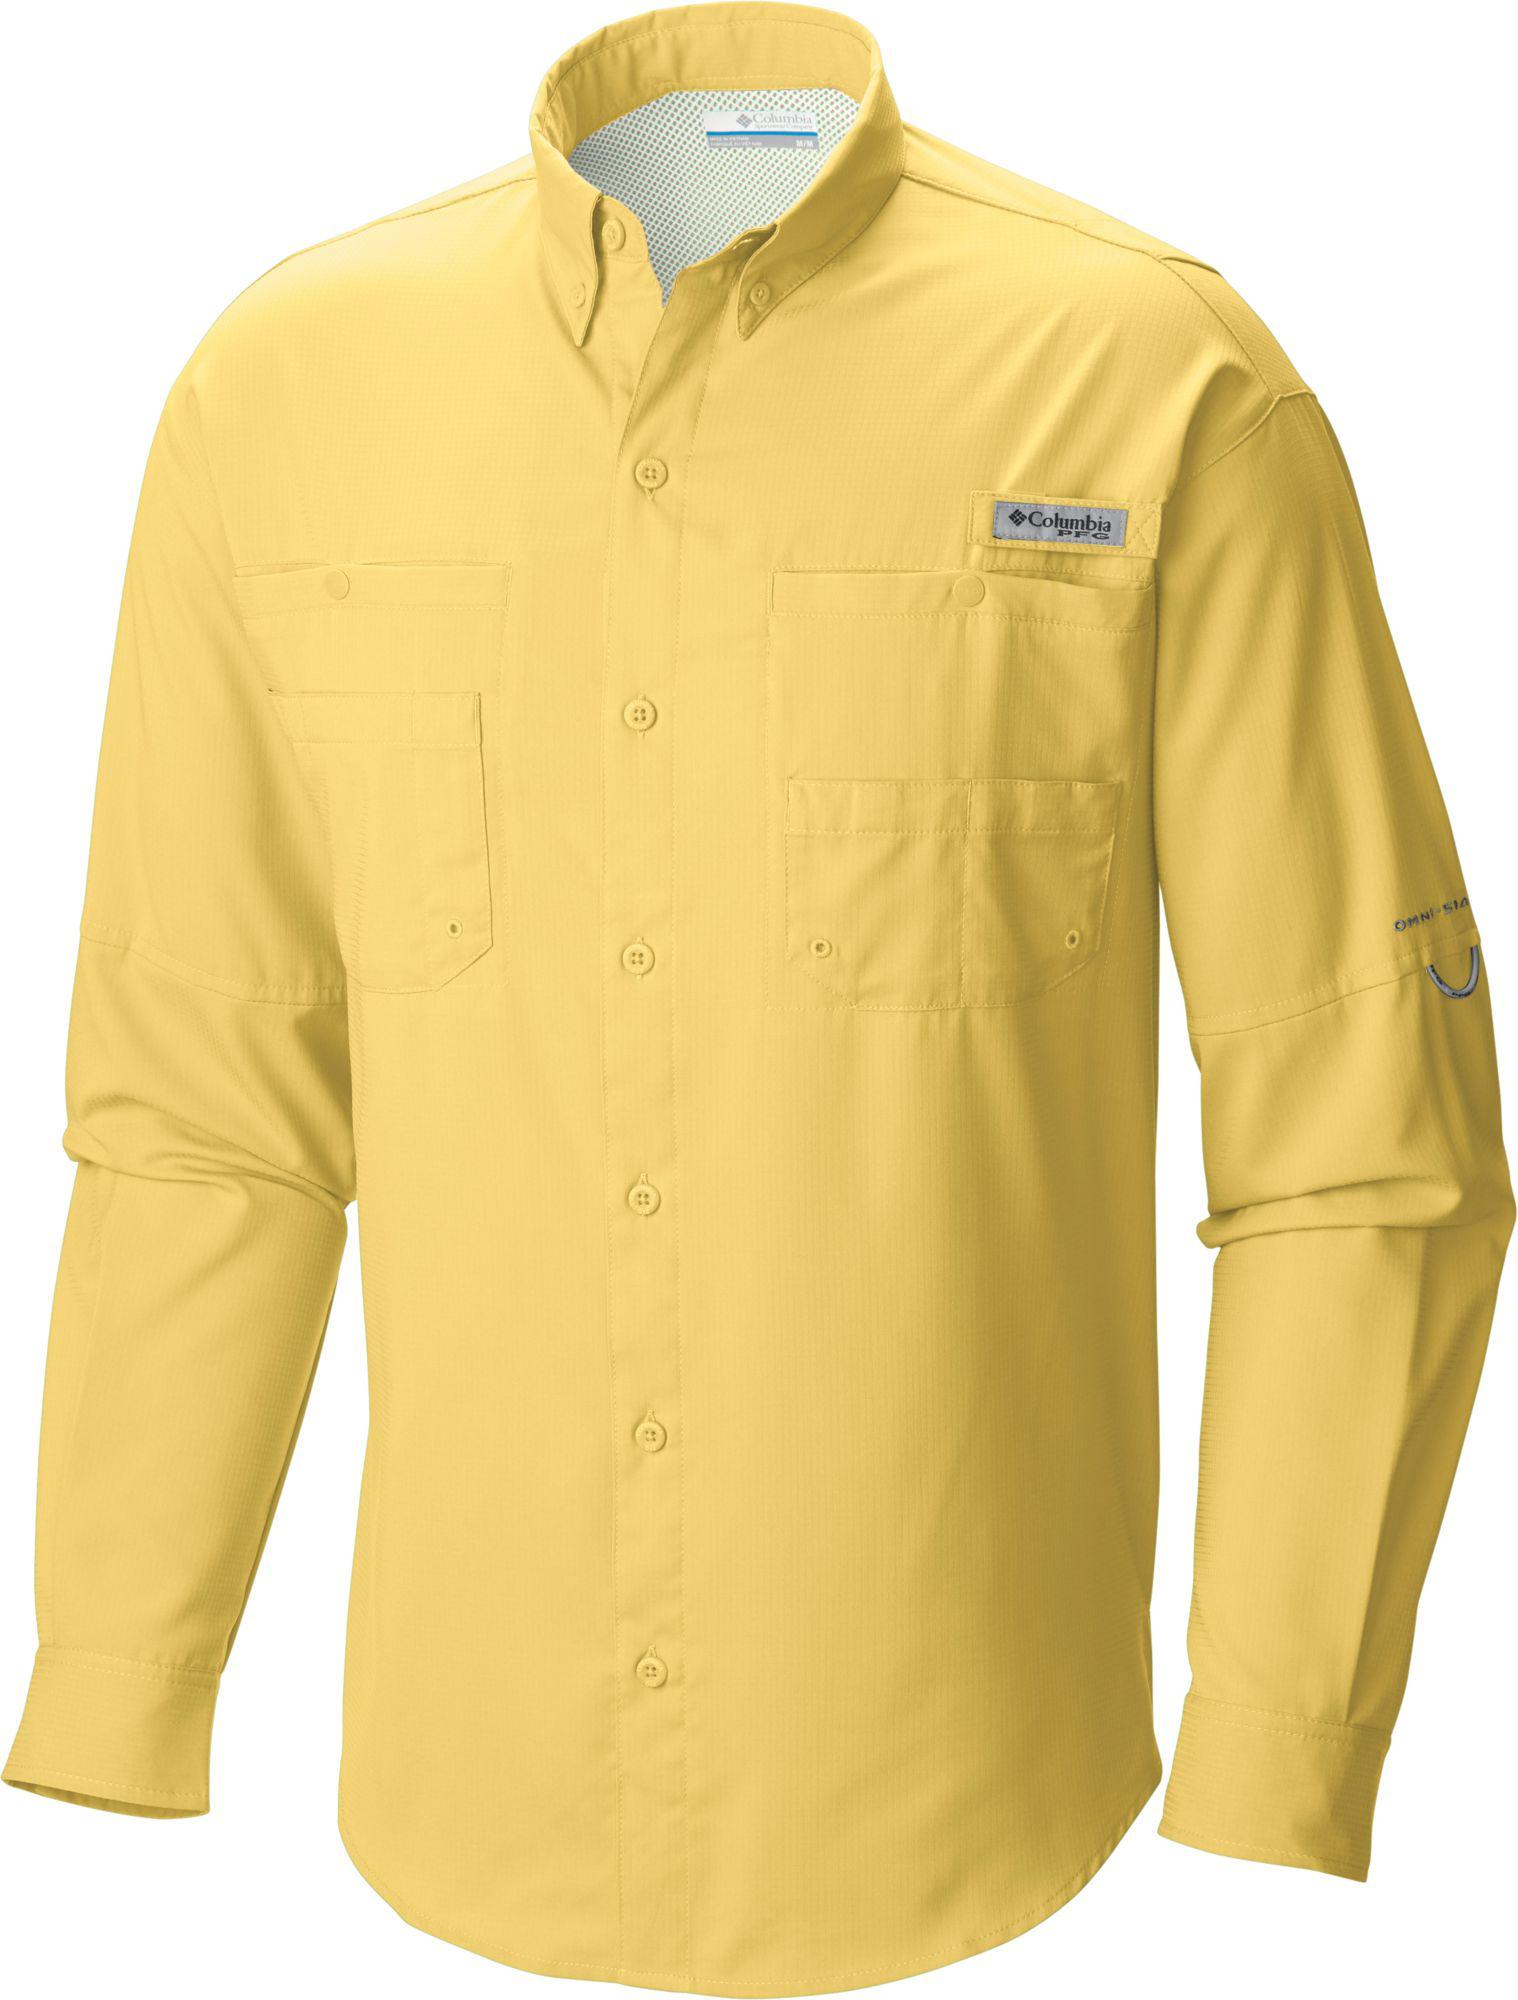 282d6a28661 Columbia Pfg Tamiami Ii Long Sleeve Shirt in Yellow for Men - Save ...